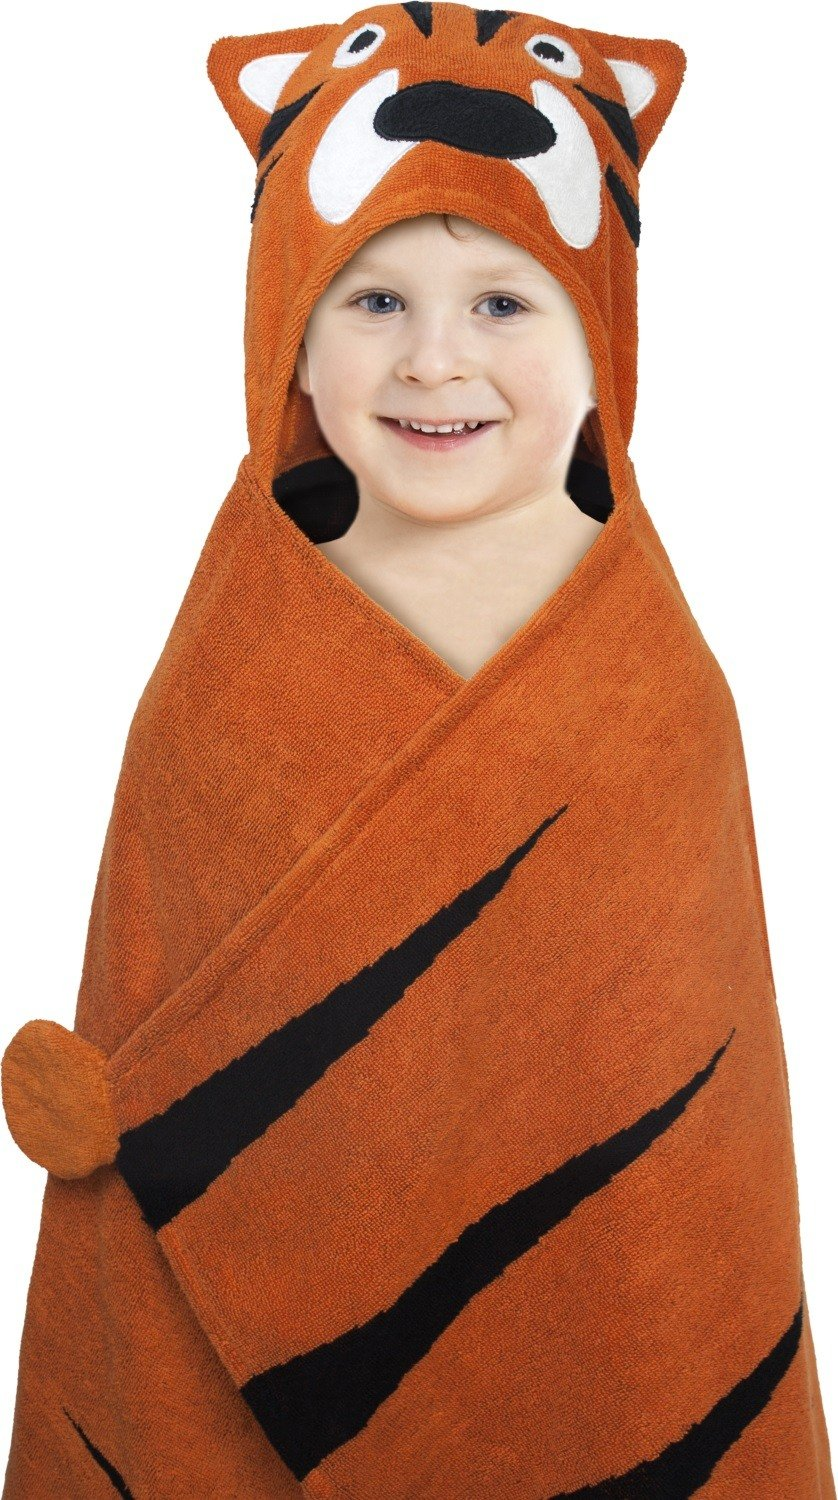 Hooded Towel For Kids, Oversize Cotton Character Hood Towel - Makes Getting Dry Fun - Ideal Beach Towels for Toddlers and Small Children - Use at the Pool or Bath Time, 27 x 47'', Tiger